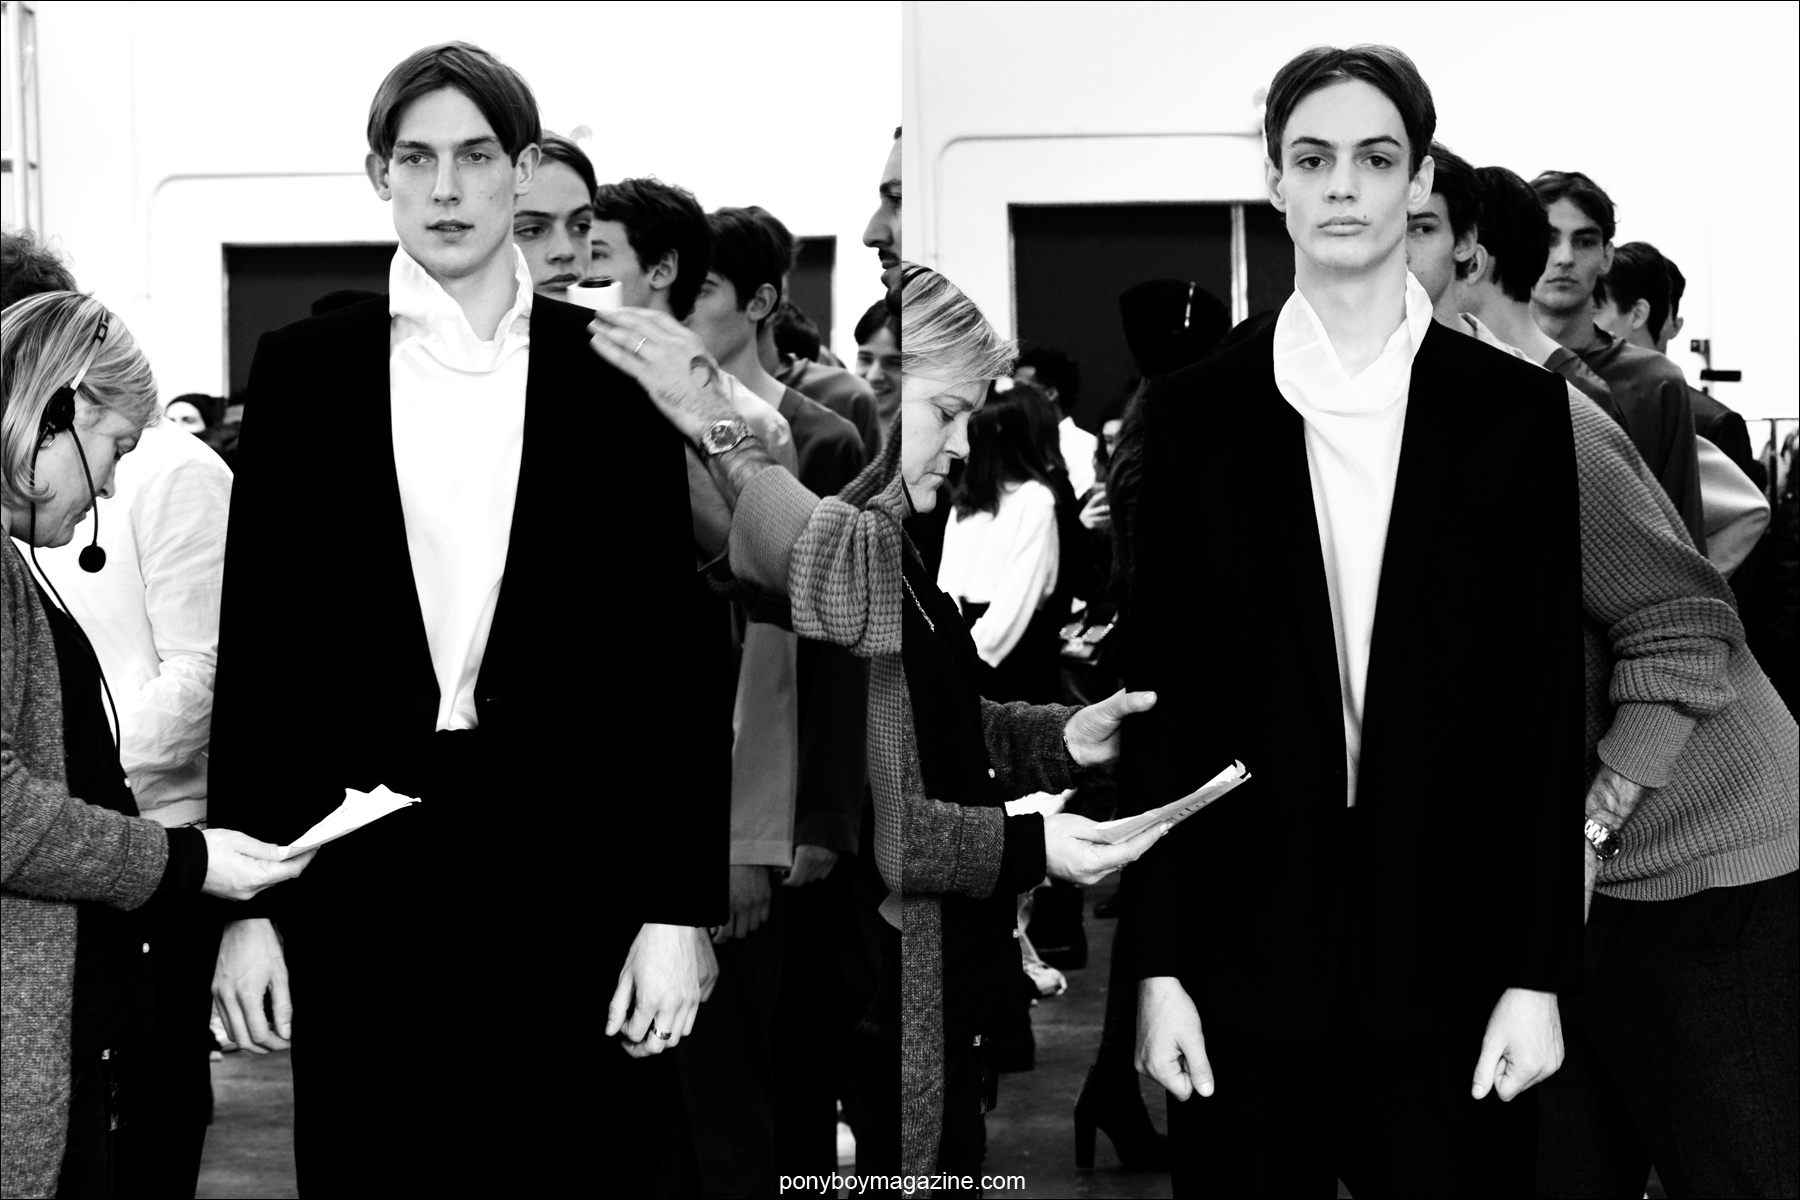 Charlie James photographed backstage at Duckie Brown F/W15, before walking the runway. Photographed at Industria Studios in New York City by Alexander Thompson for Ponyboy magazine.